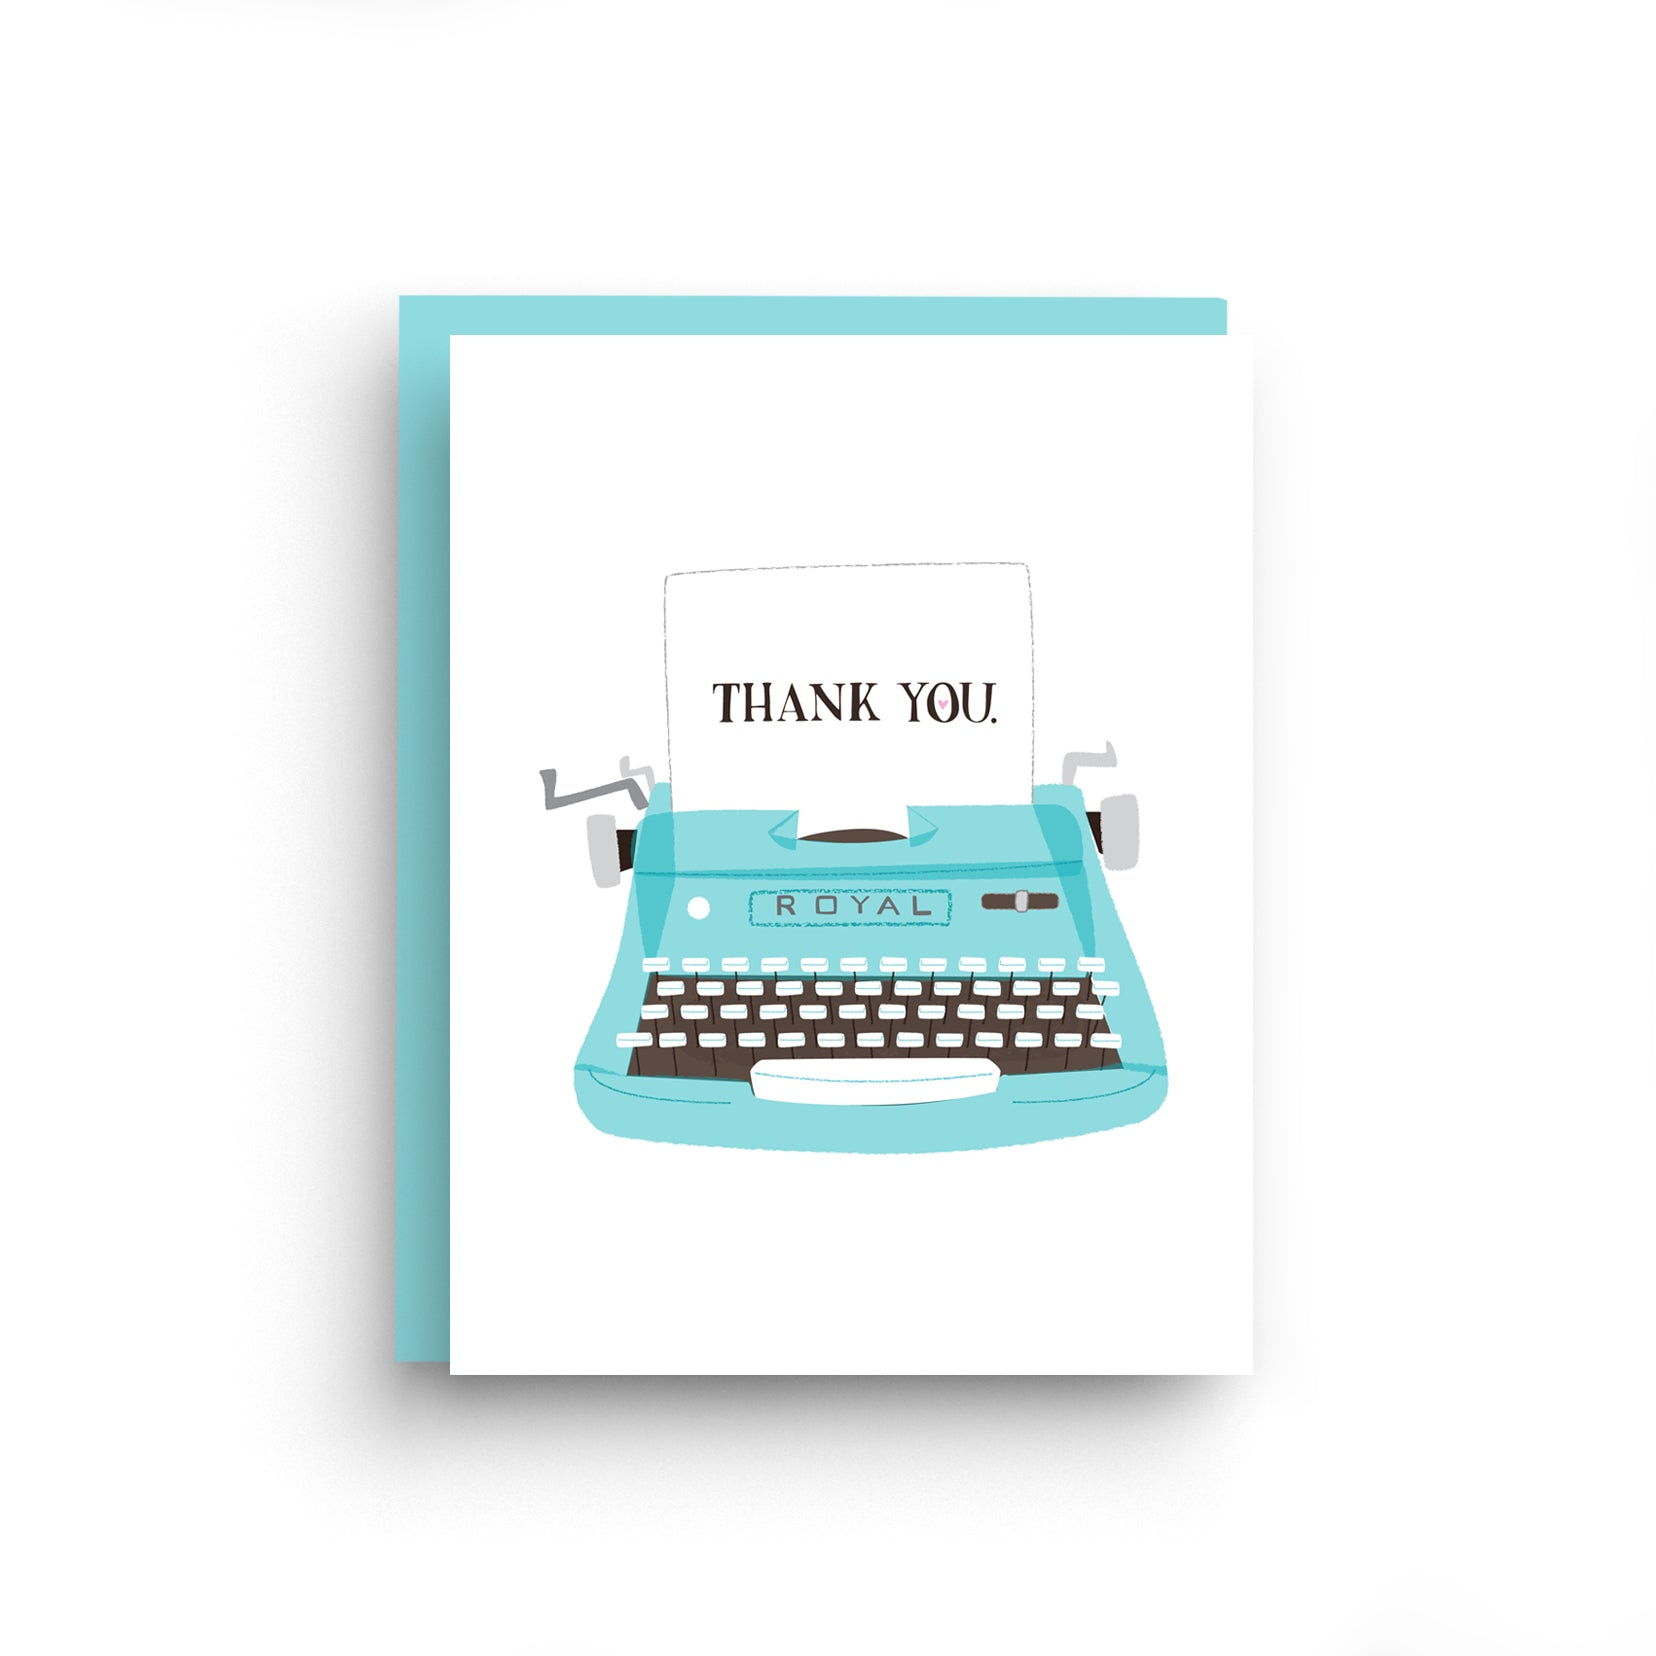 thank you cards, boxed set of cards, thank you card, thank you notes, thanks, vintage typewriter, blue typewriter, blue thank you card, royal typewriter, typewriter card, card for writer, typewriter thank you, retro typewriter